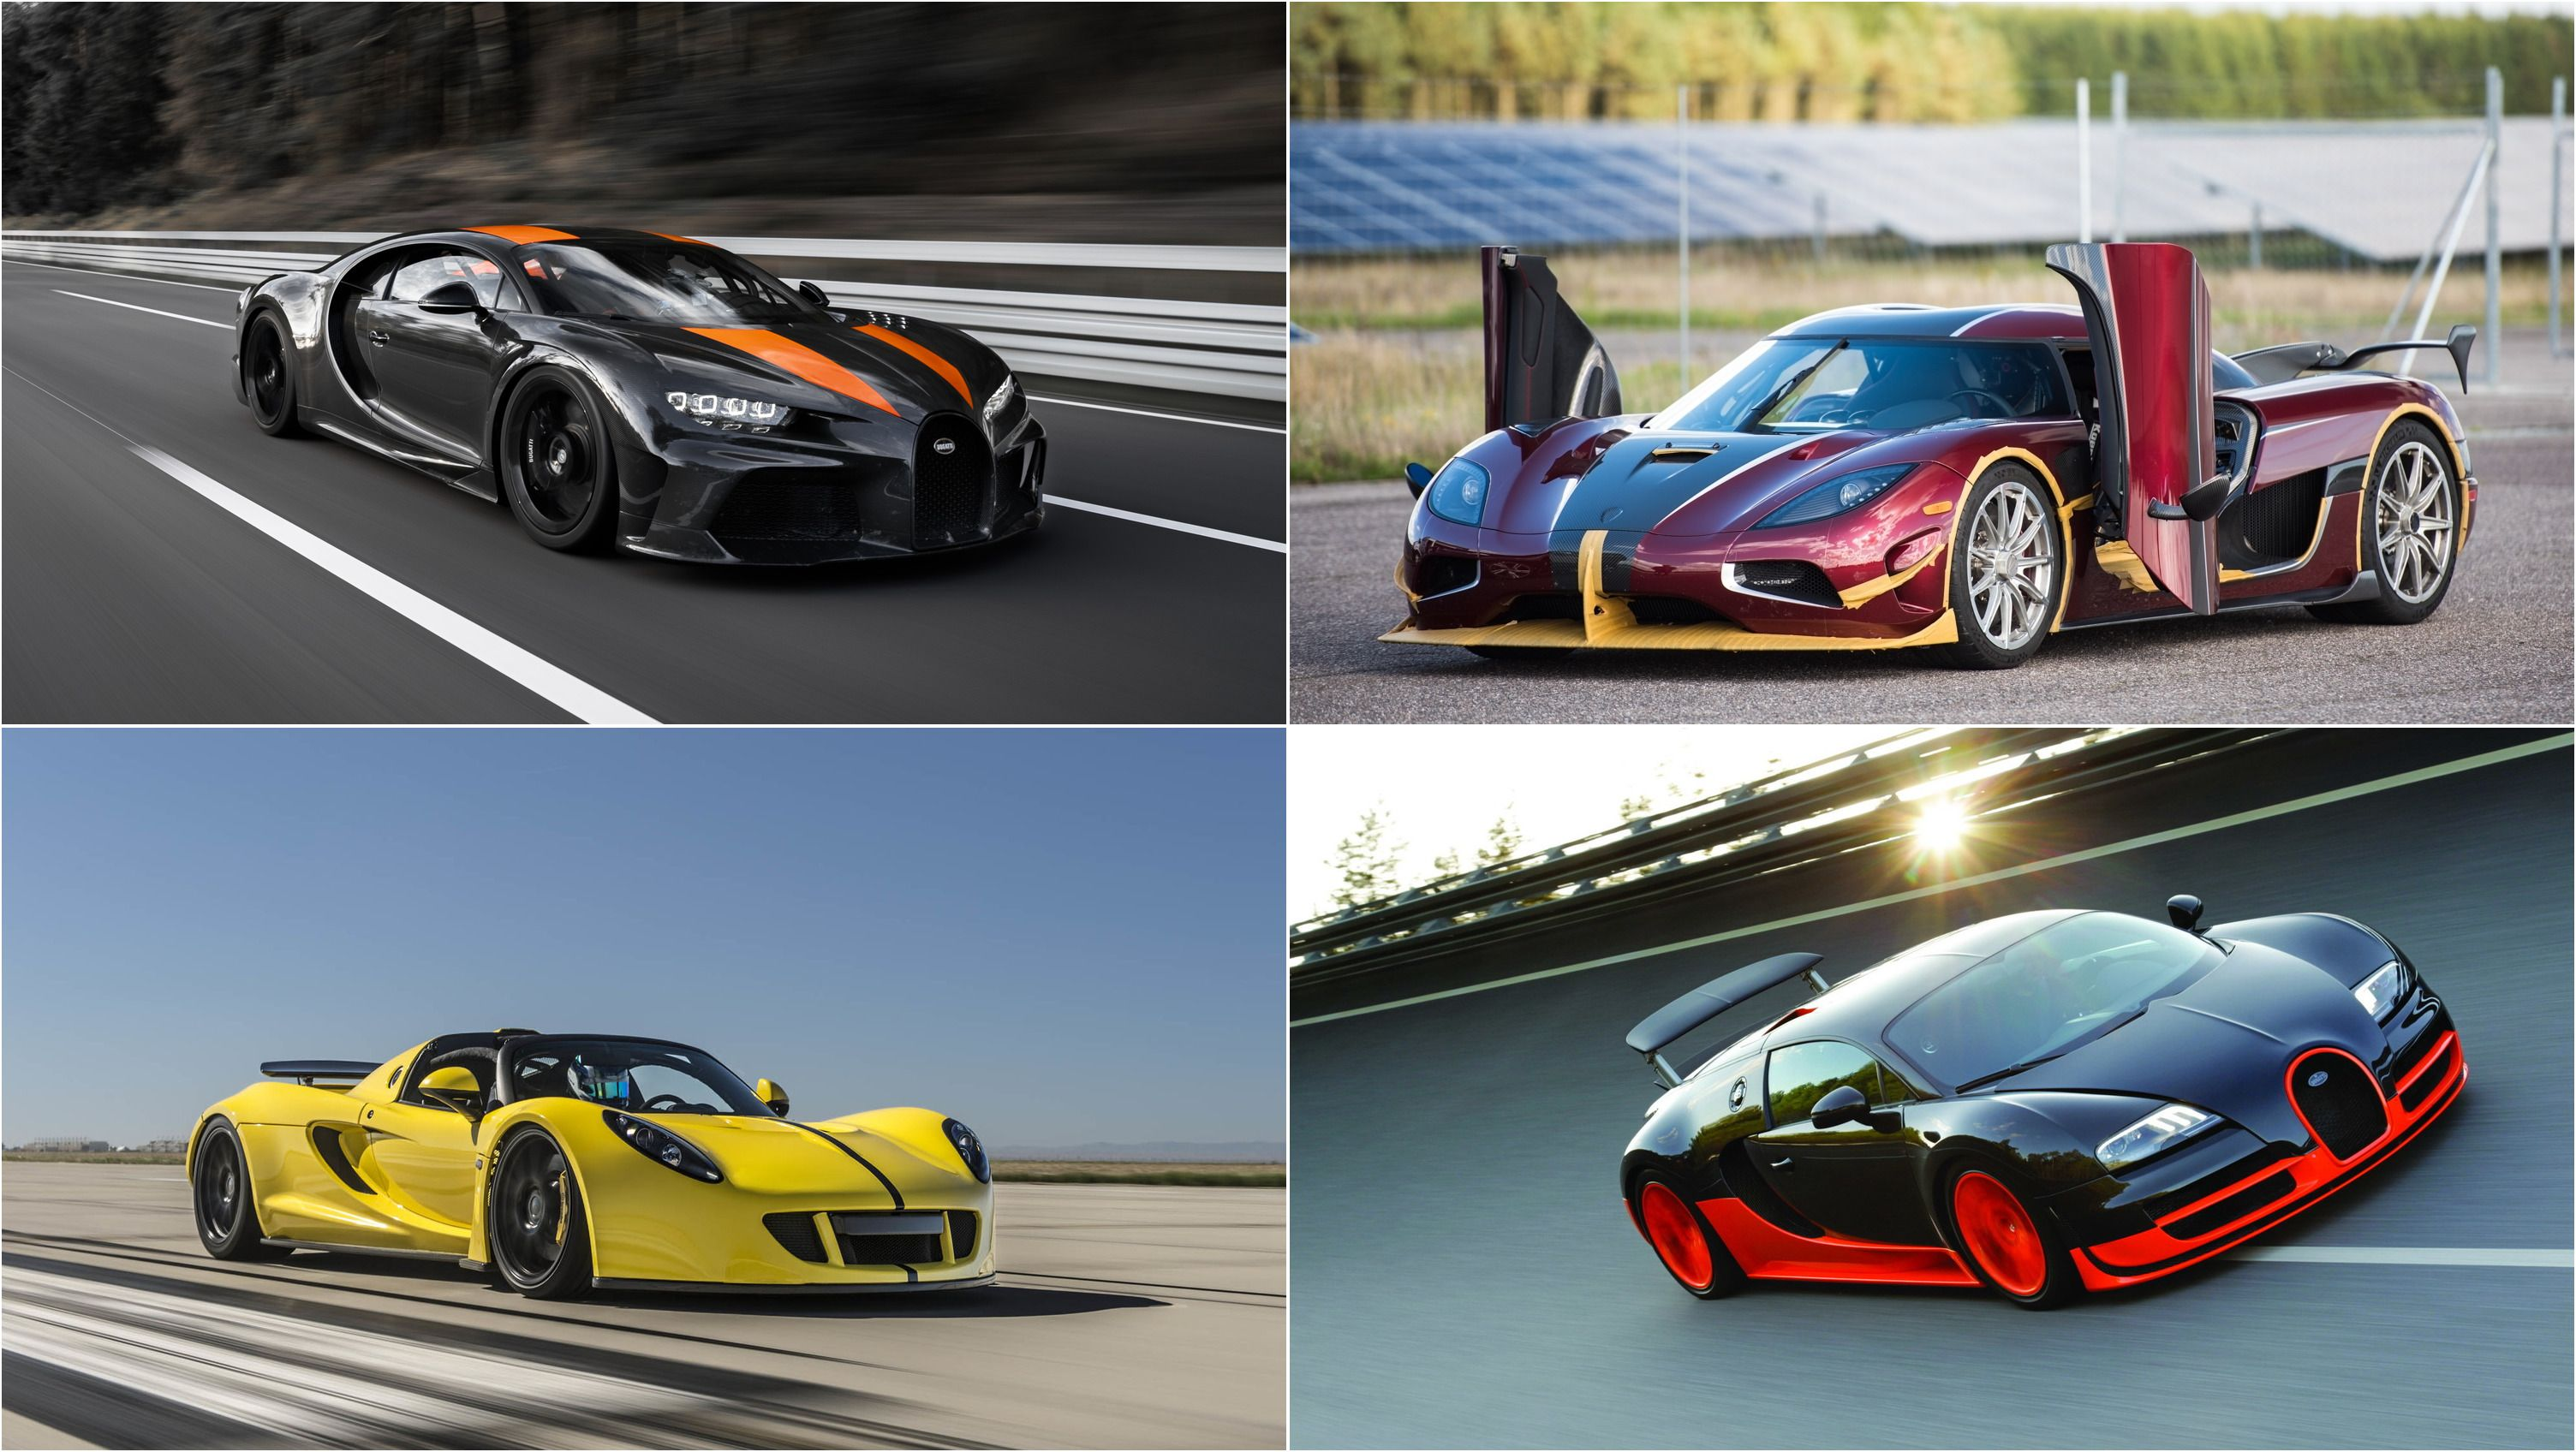 10 Fastest Cars In The World Ranked Fastest To Slowest Top Speed In 2020 Car In The World Fast Cars Bugatti Veyron Super Sport